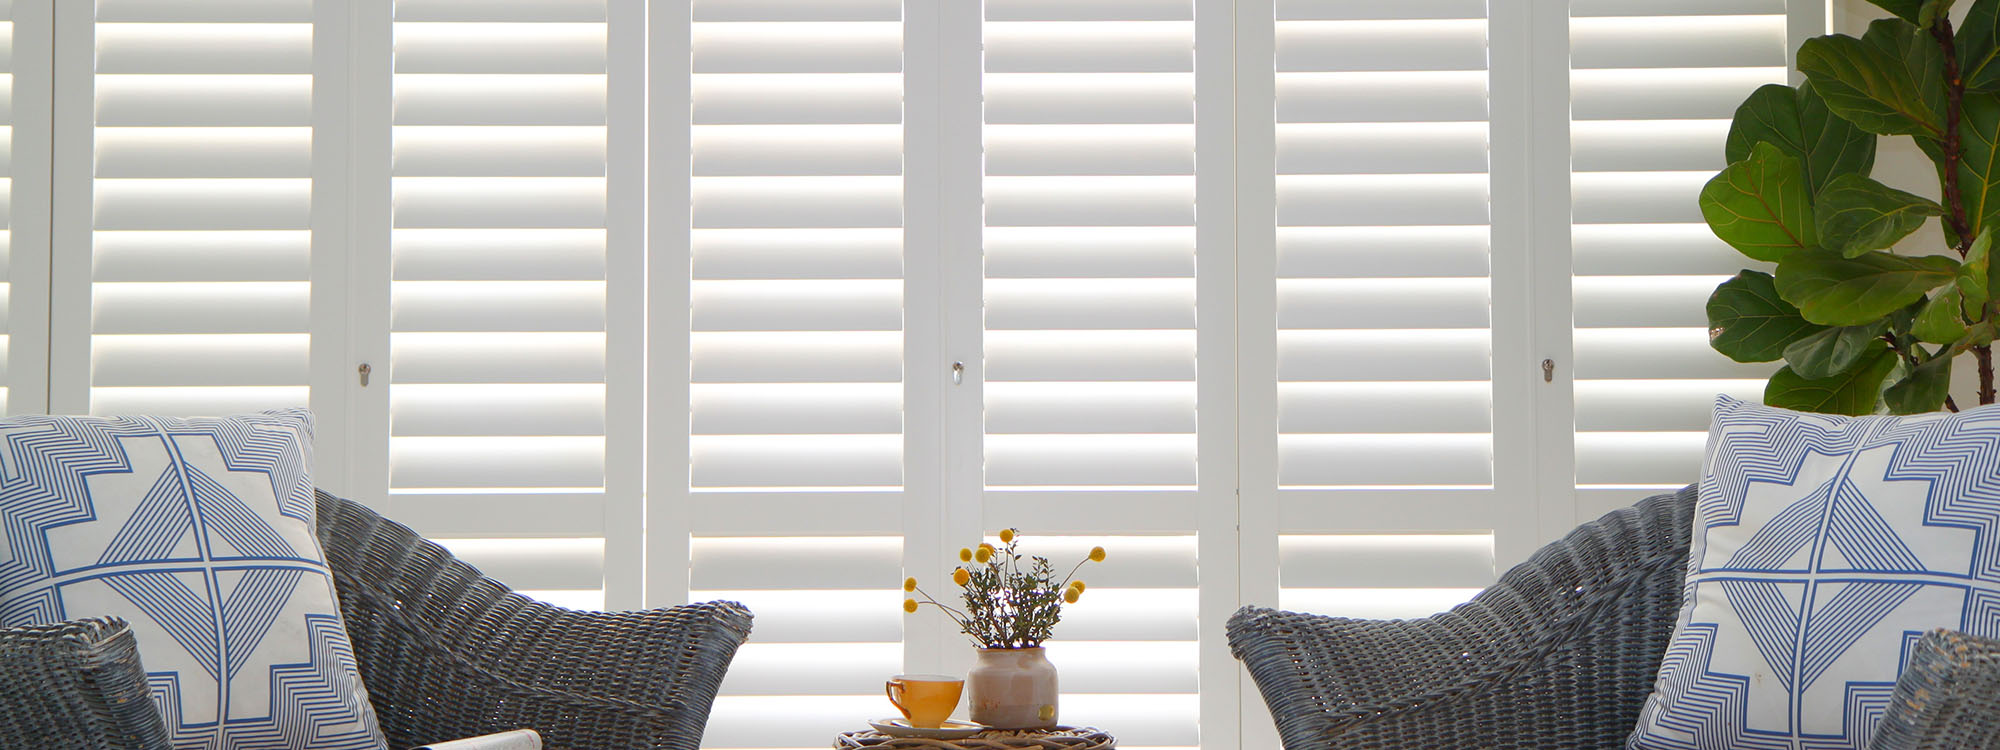 Security-shutters-living-hinged